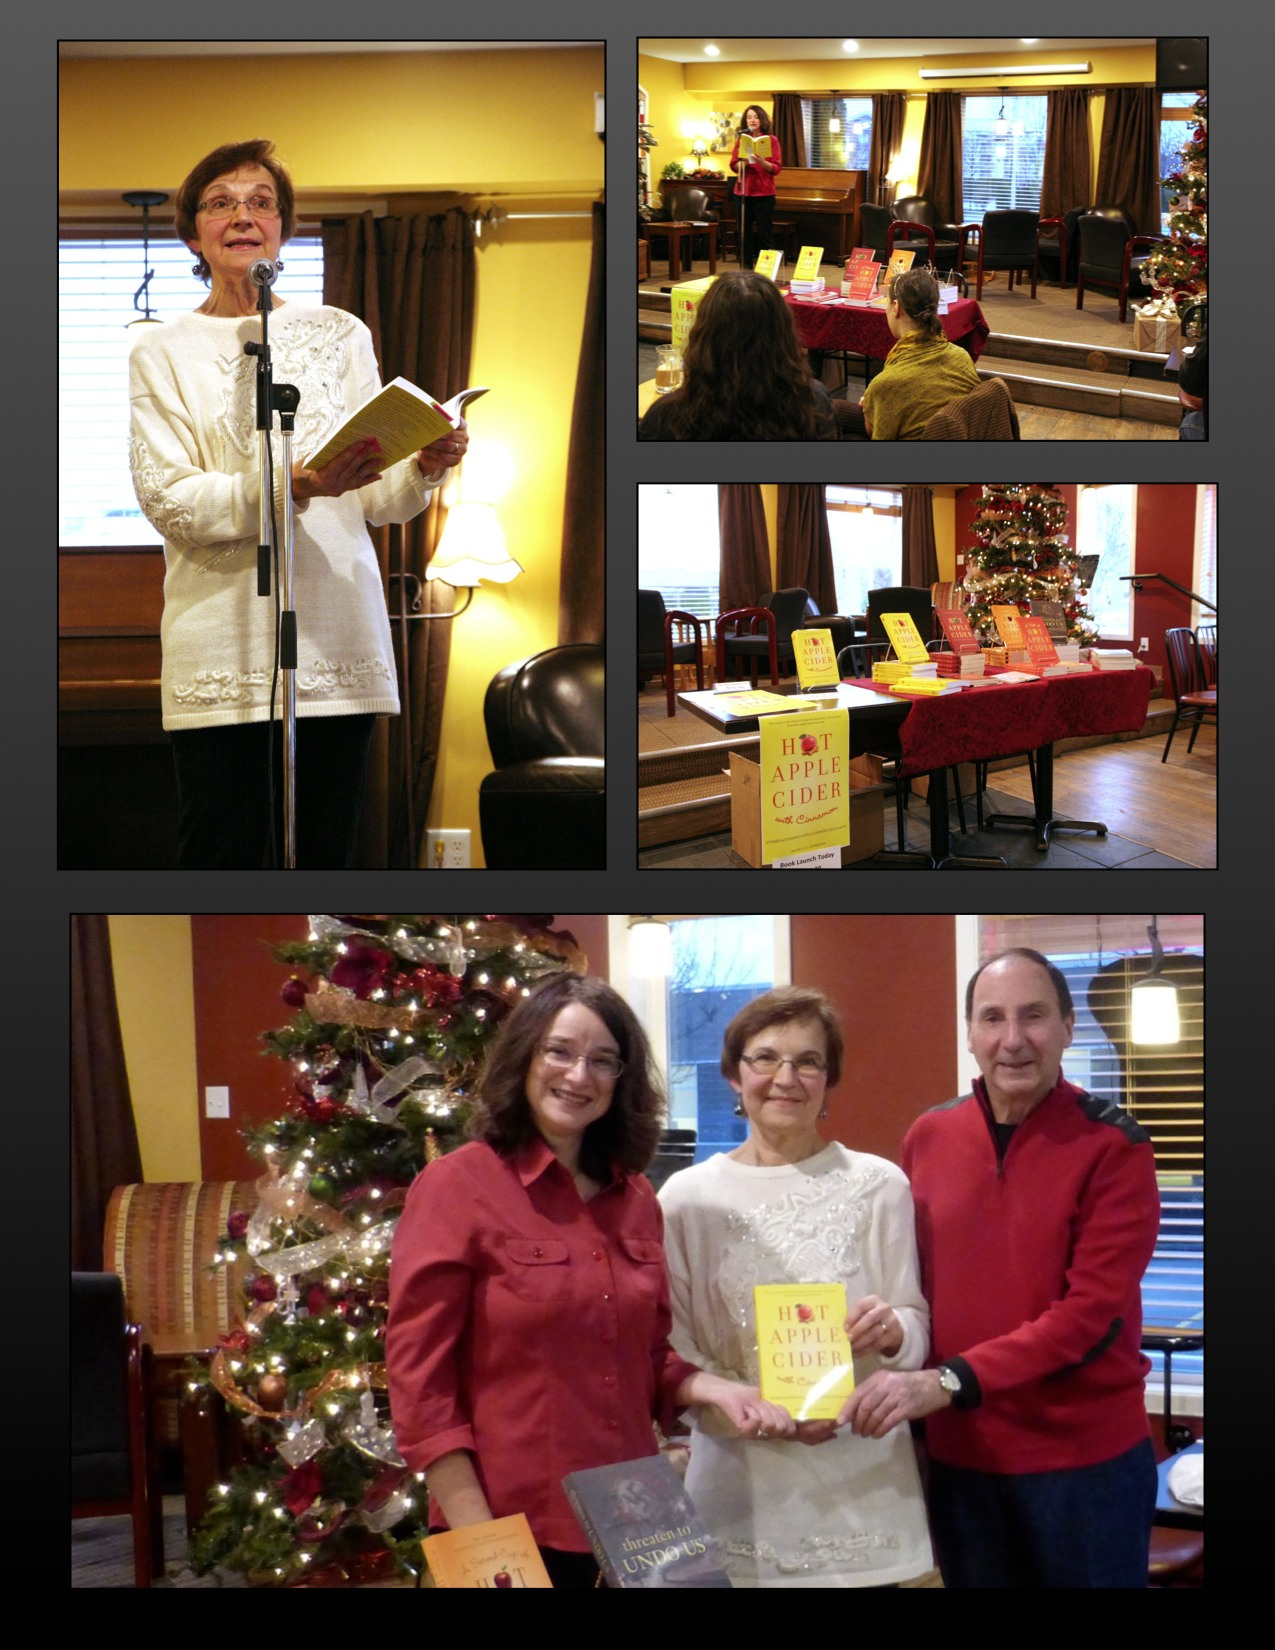 House of James book launch with Rose Seiler Scott and Bill Bonikowsky.